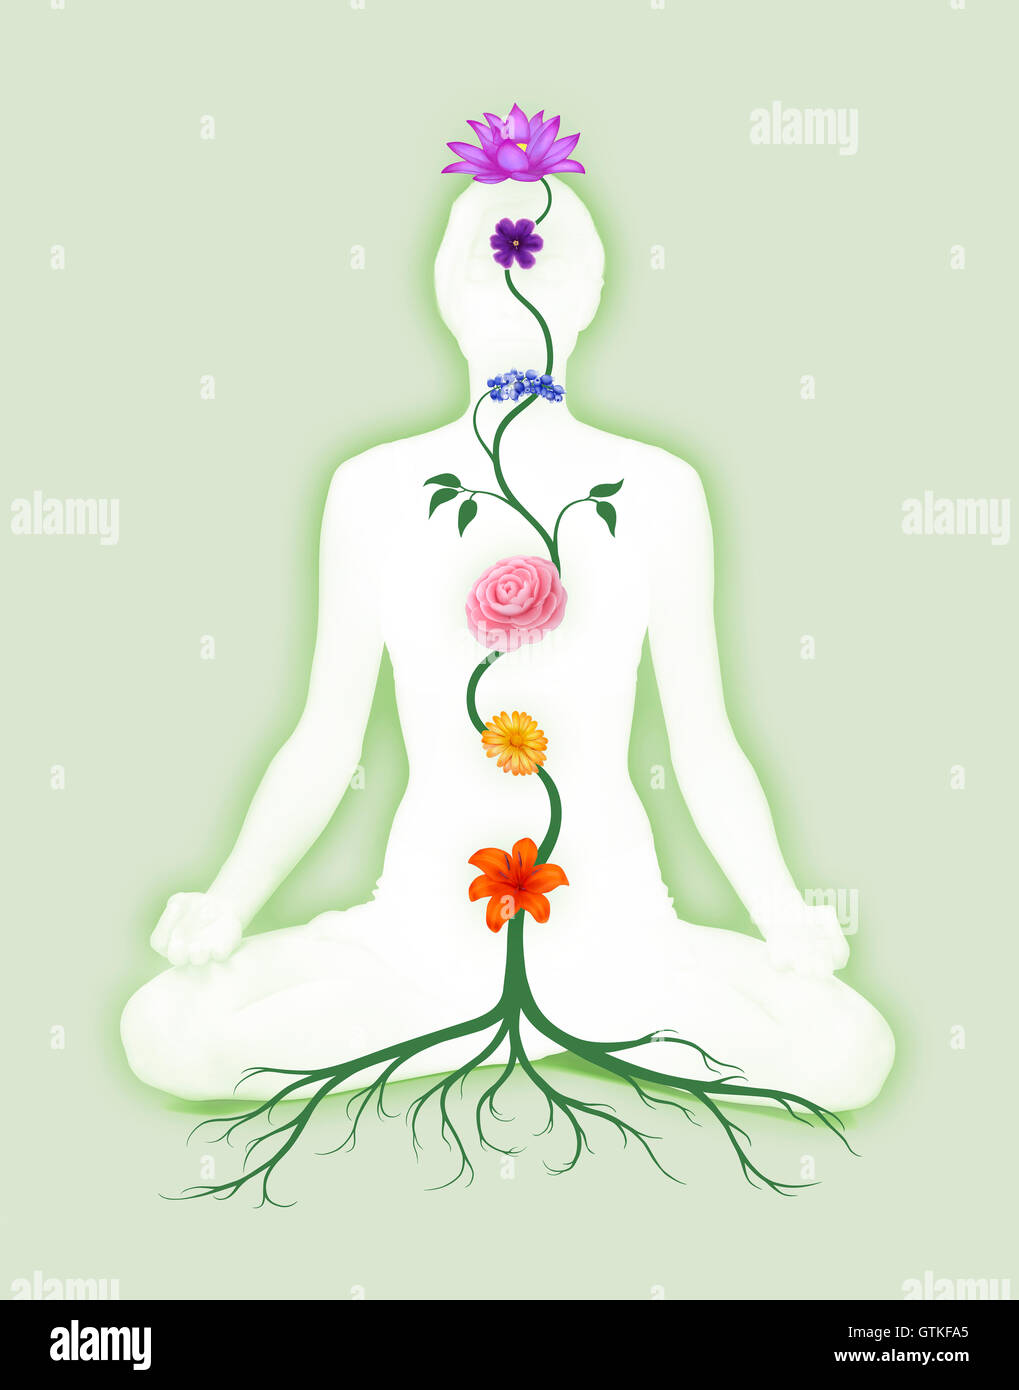 Woman sitting in lotus pose with seven chakra symbols represented as associated with chakras flowers and colors - Stock Image